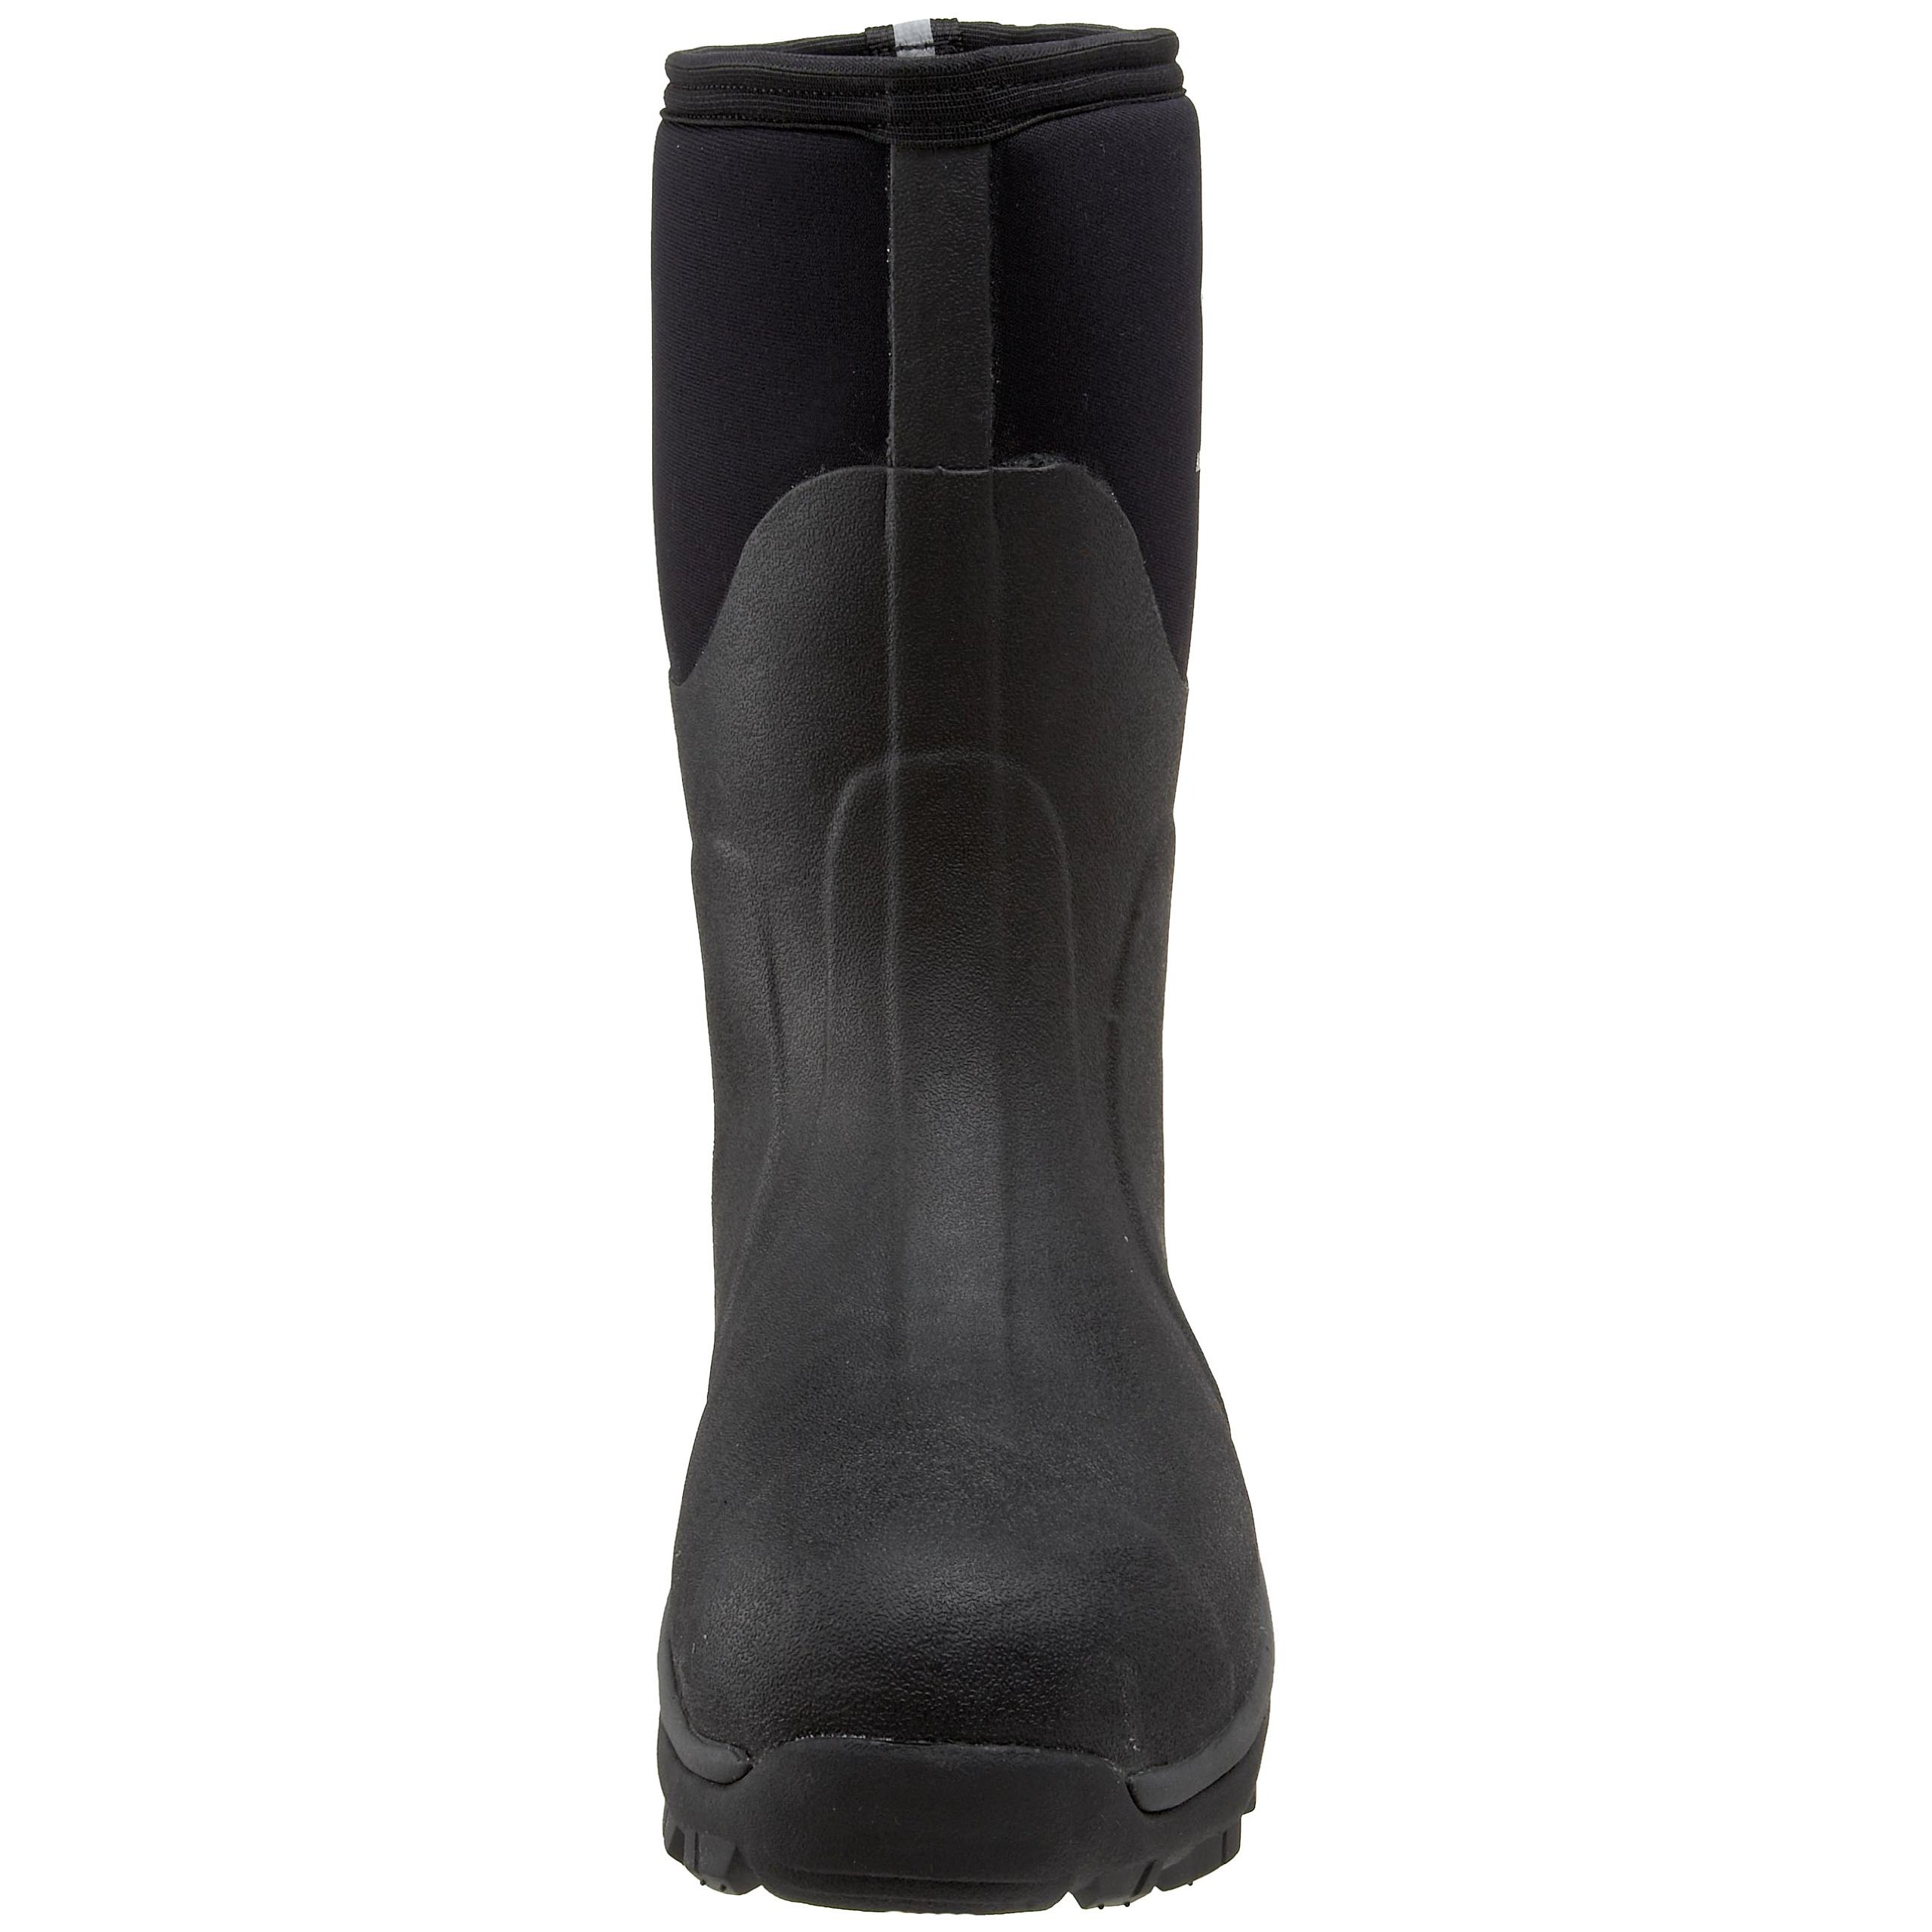 The Original MuckBoots Arctic Sport Mid Outdoor Boot,Black,12 M US Mens/13 M US Womens by Muck Boot (Image #4)